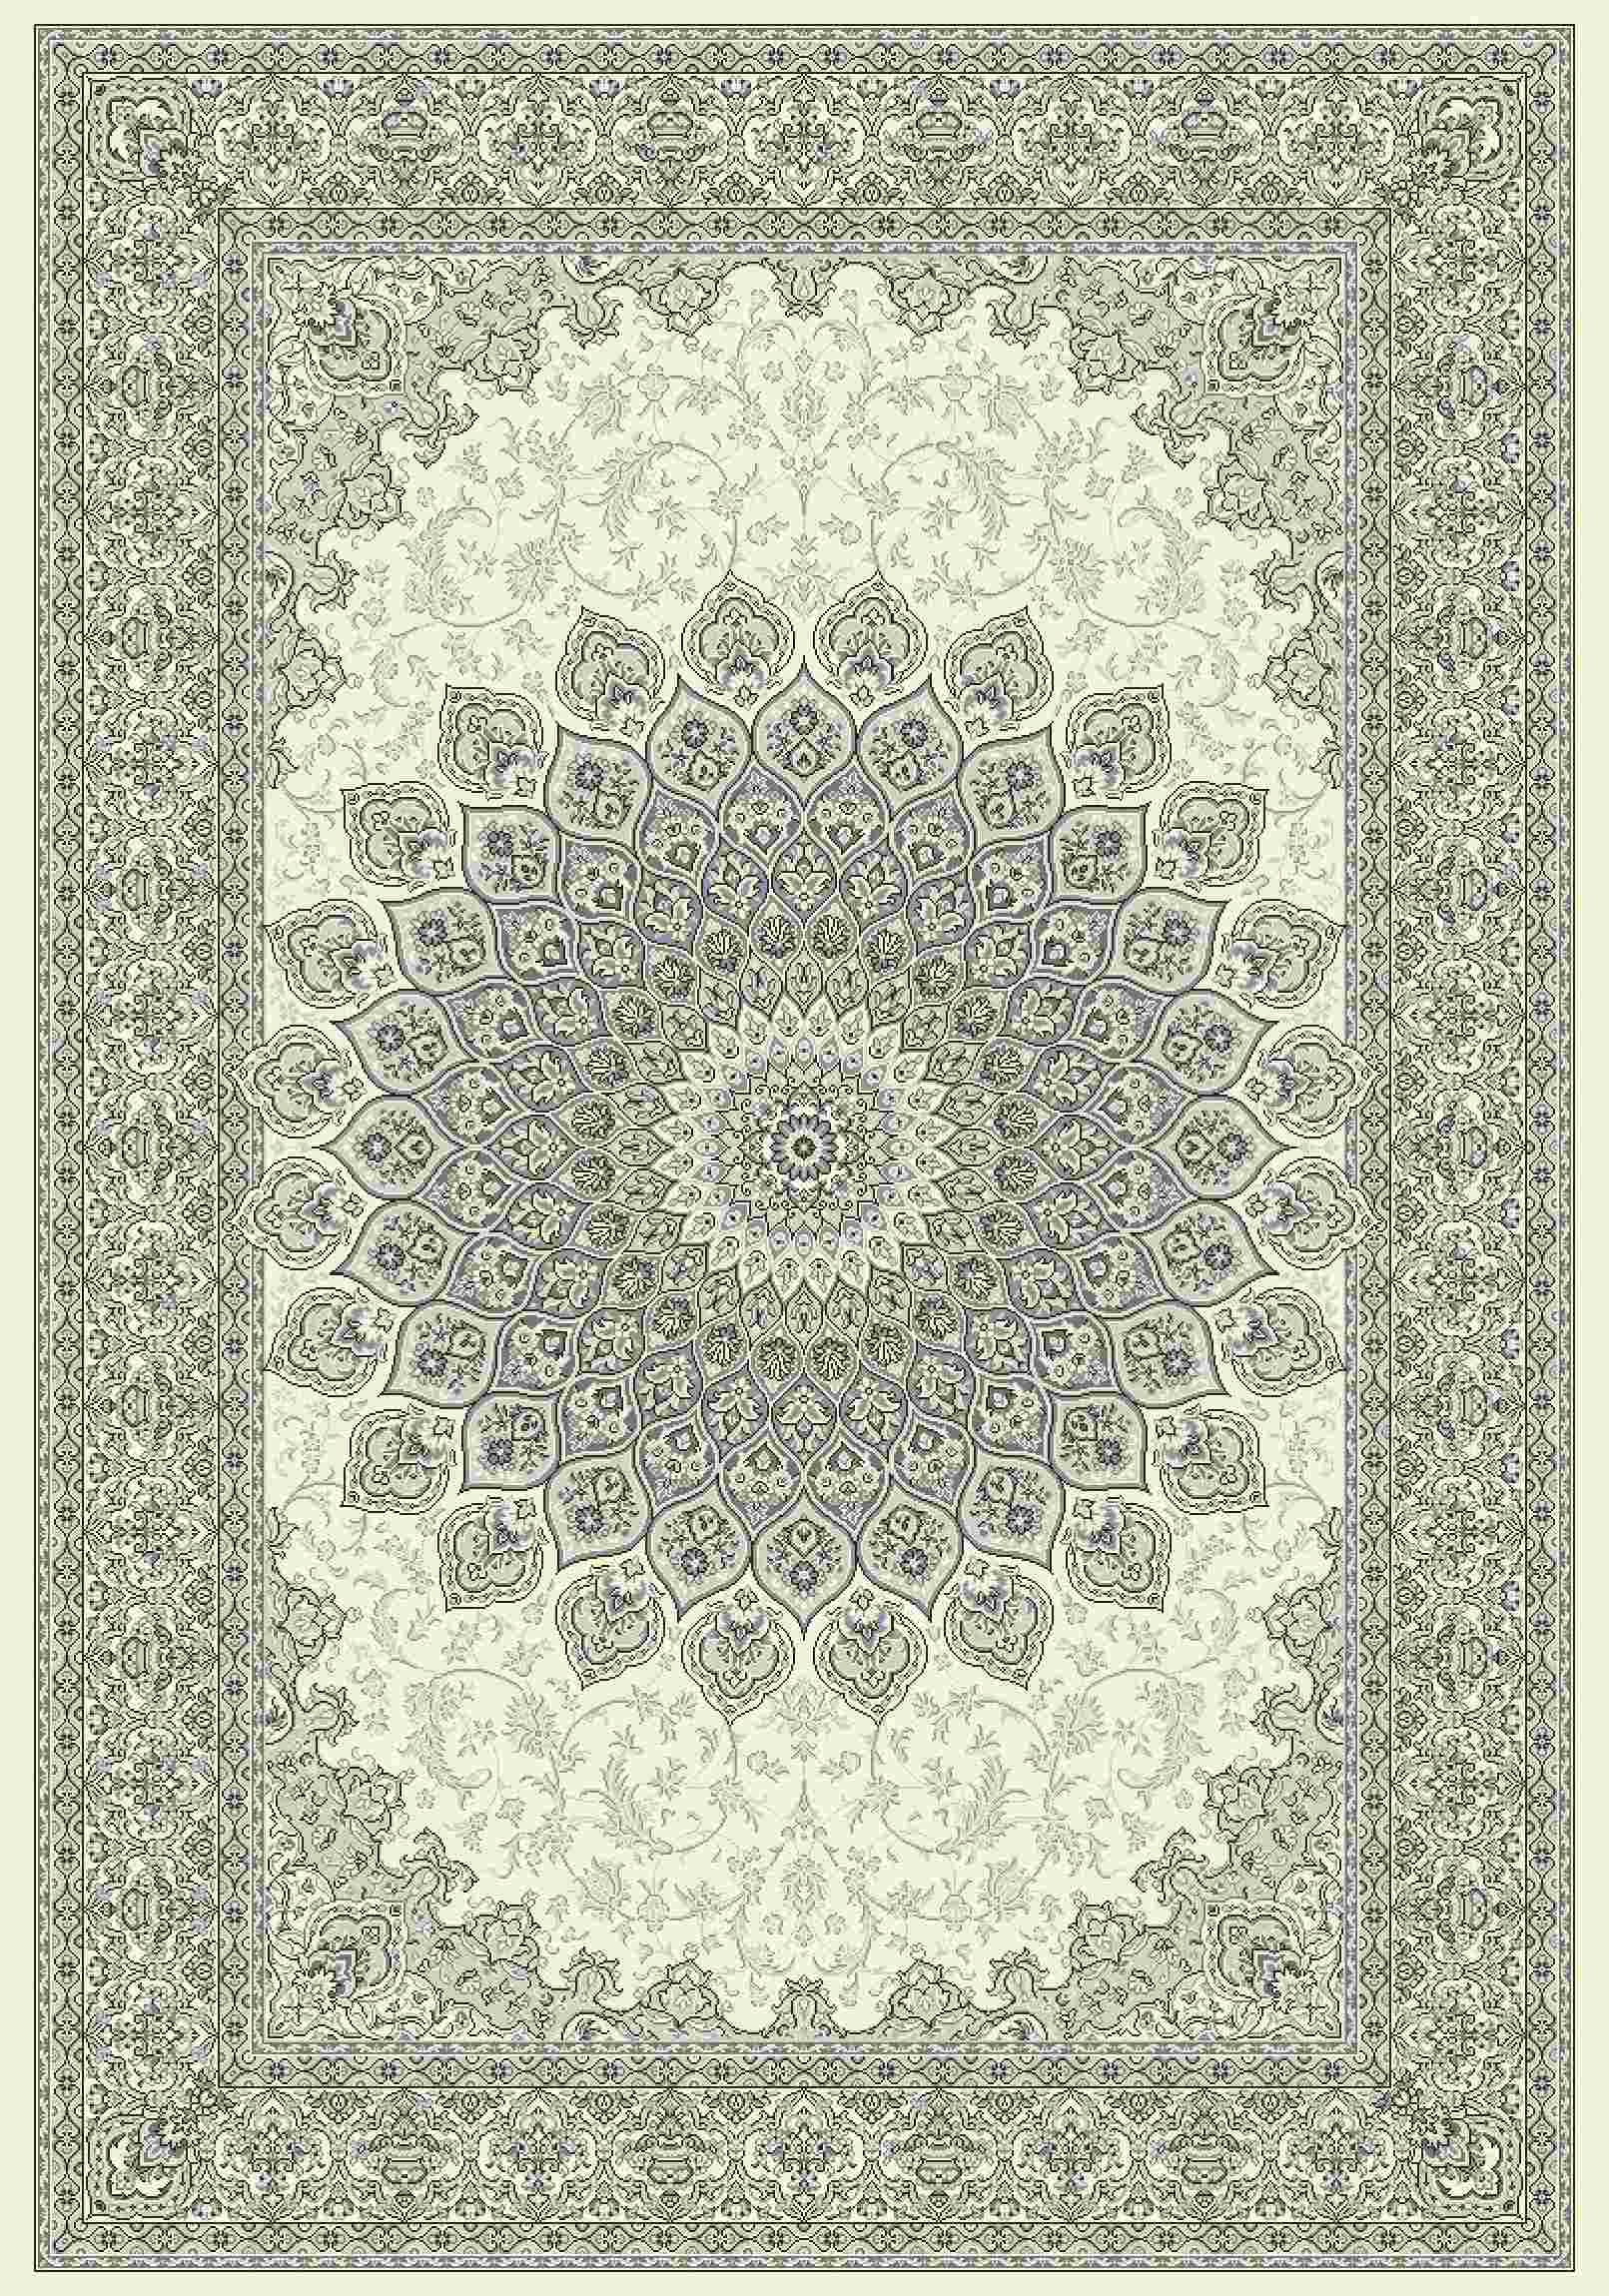 Dynamic Rugs Ancient Garden Classic Cream/grey 57090 Area Rug